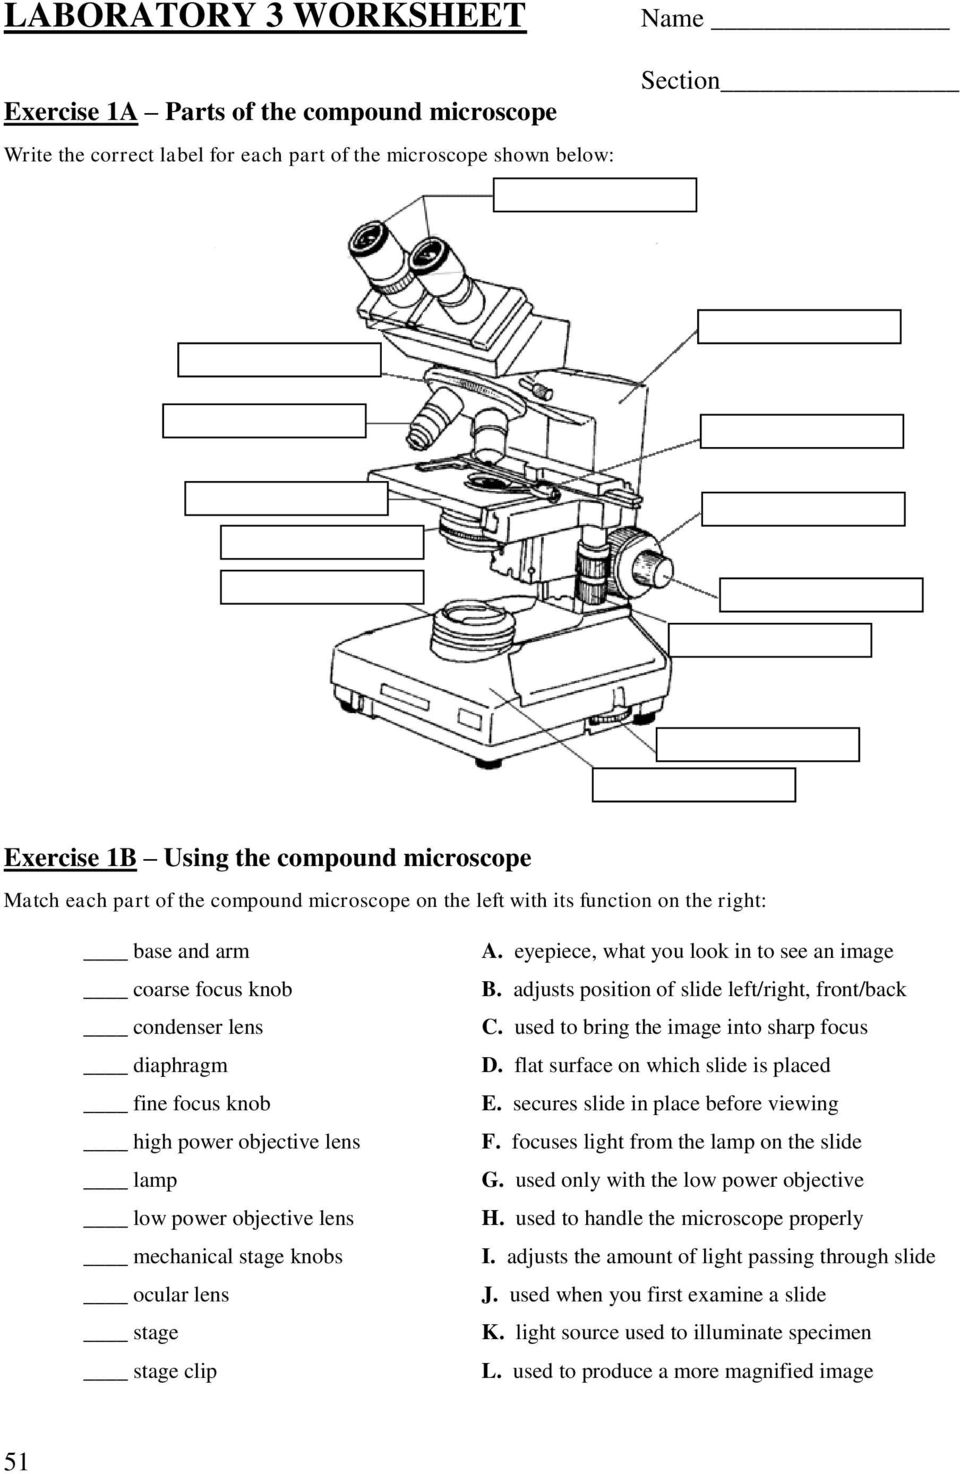 Lab 3 Use Of The Microscope Pdf Free Download